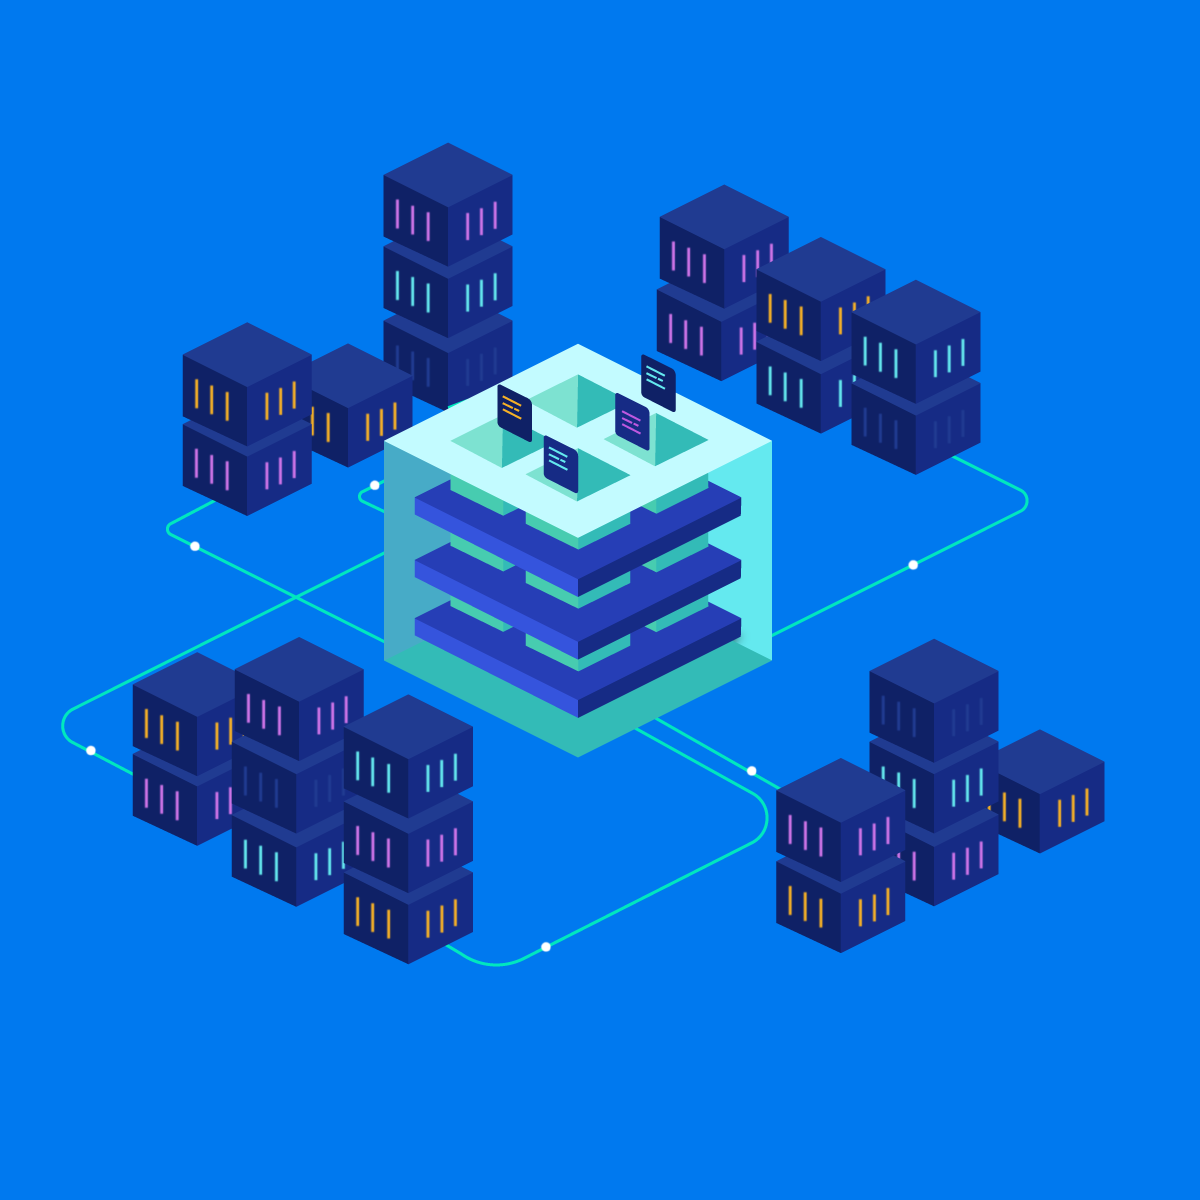 kubernetes architecture: Containers around a big box which manages those containers for applications